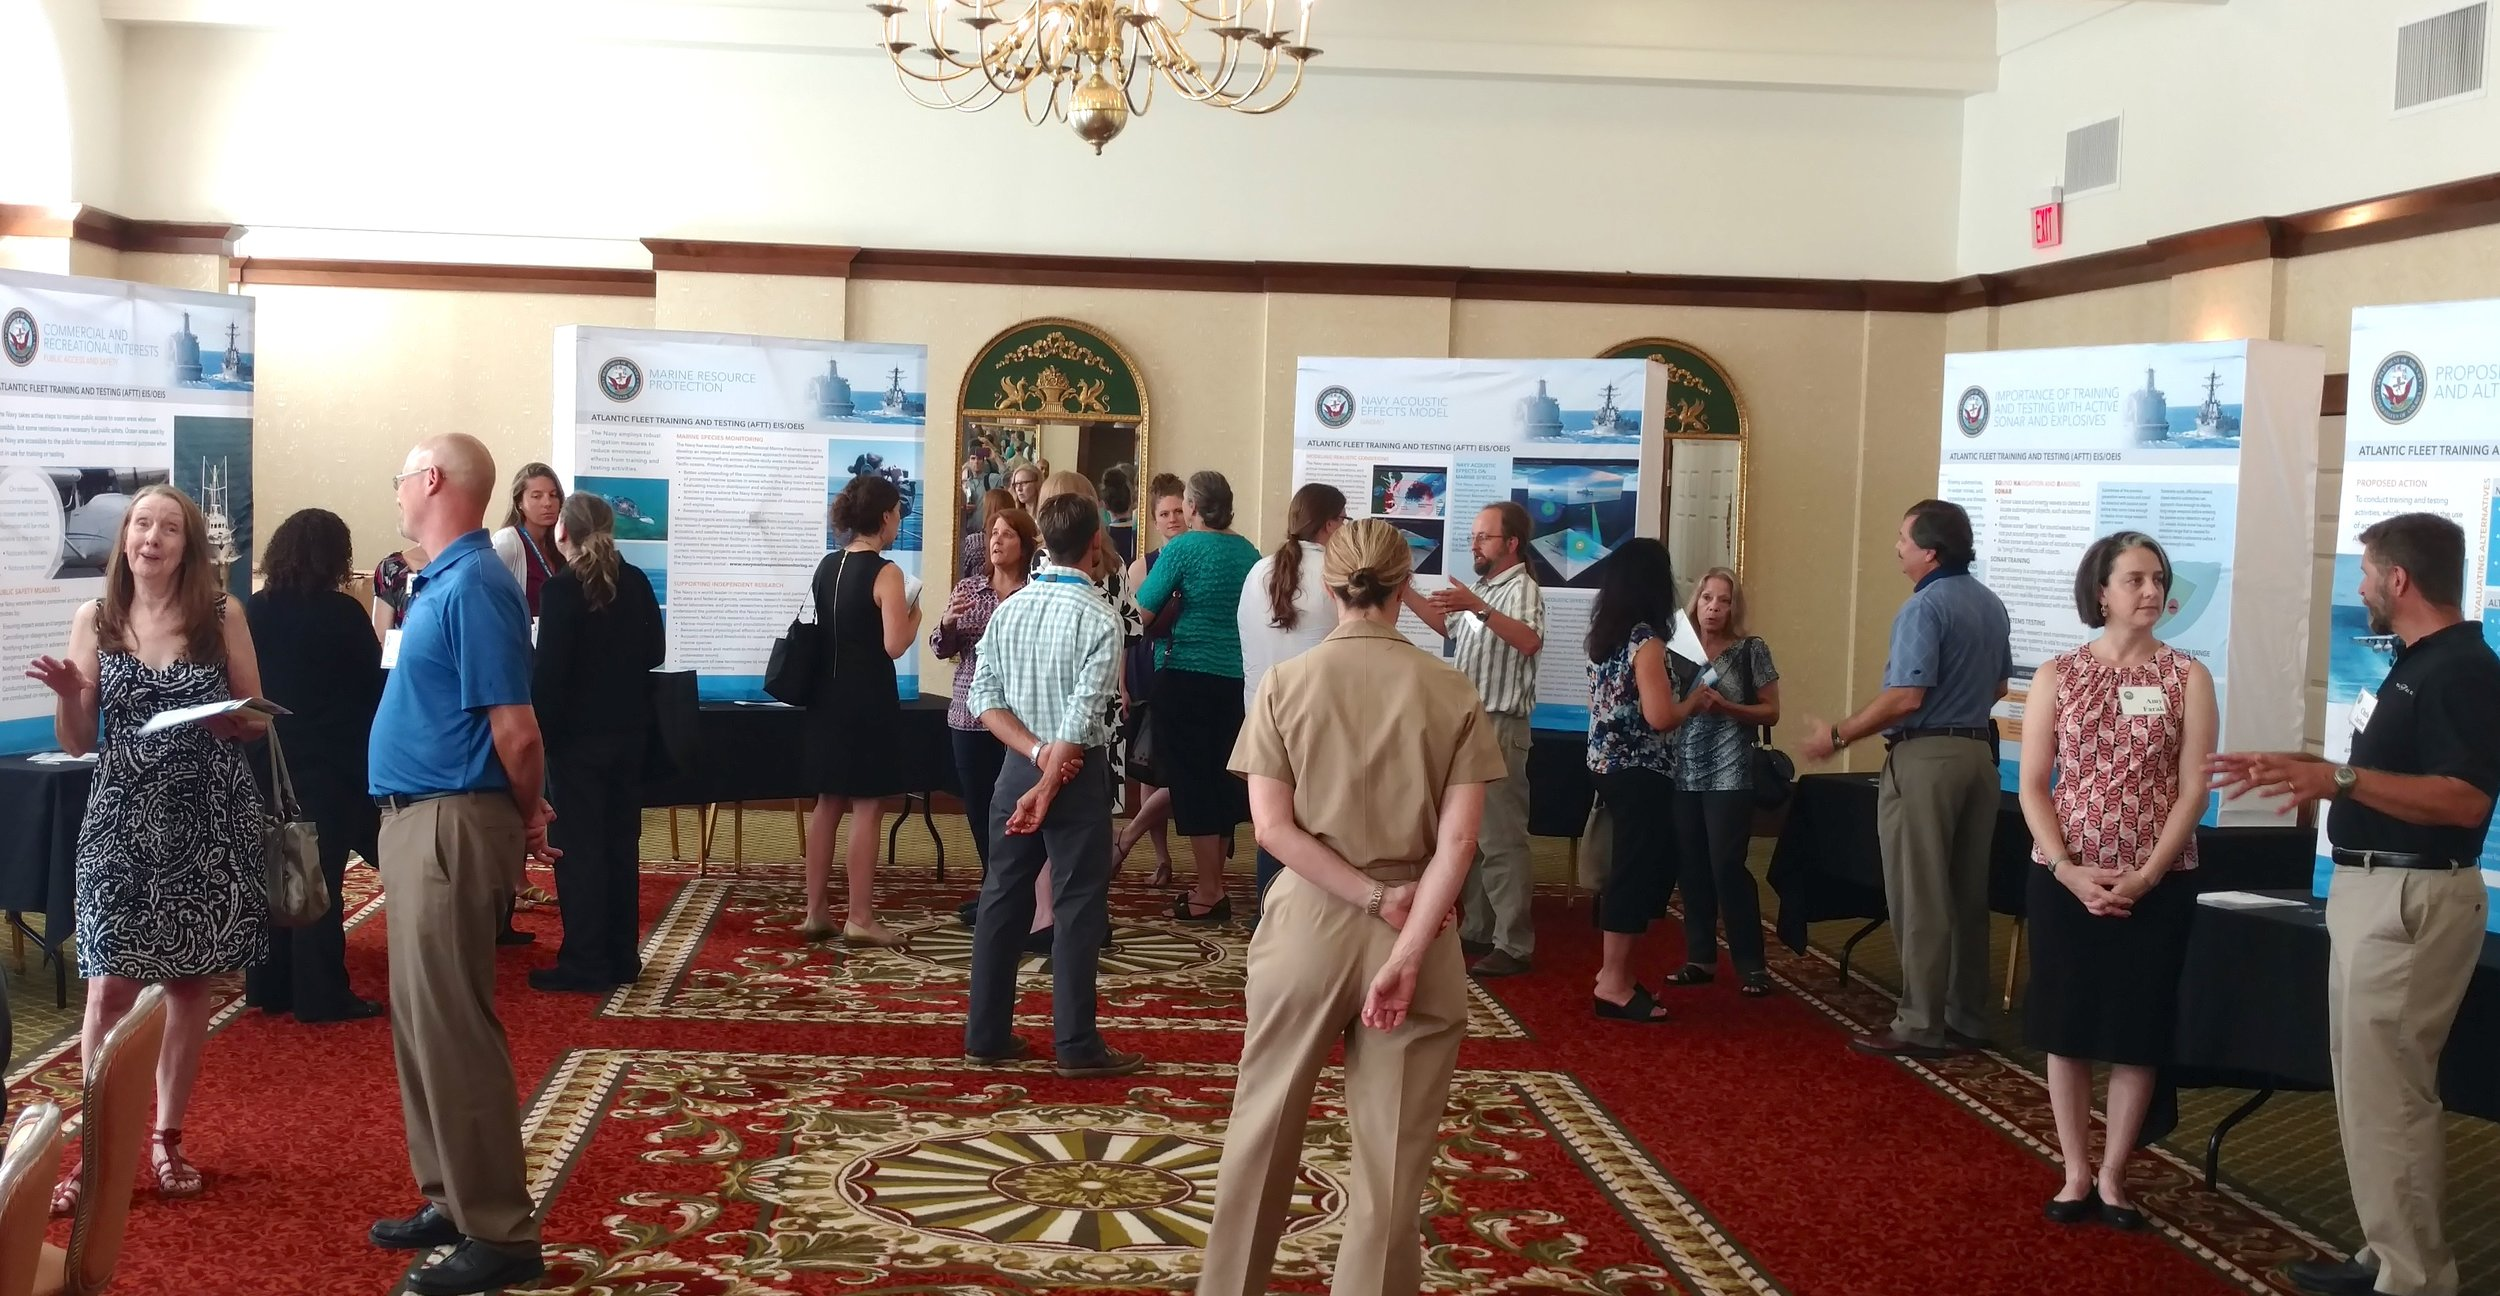 The July 19 open house at Hotel Providence didn't offer a speaking forum as some expected. (Tim Faulkner/ecoRI News)